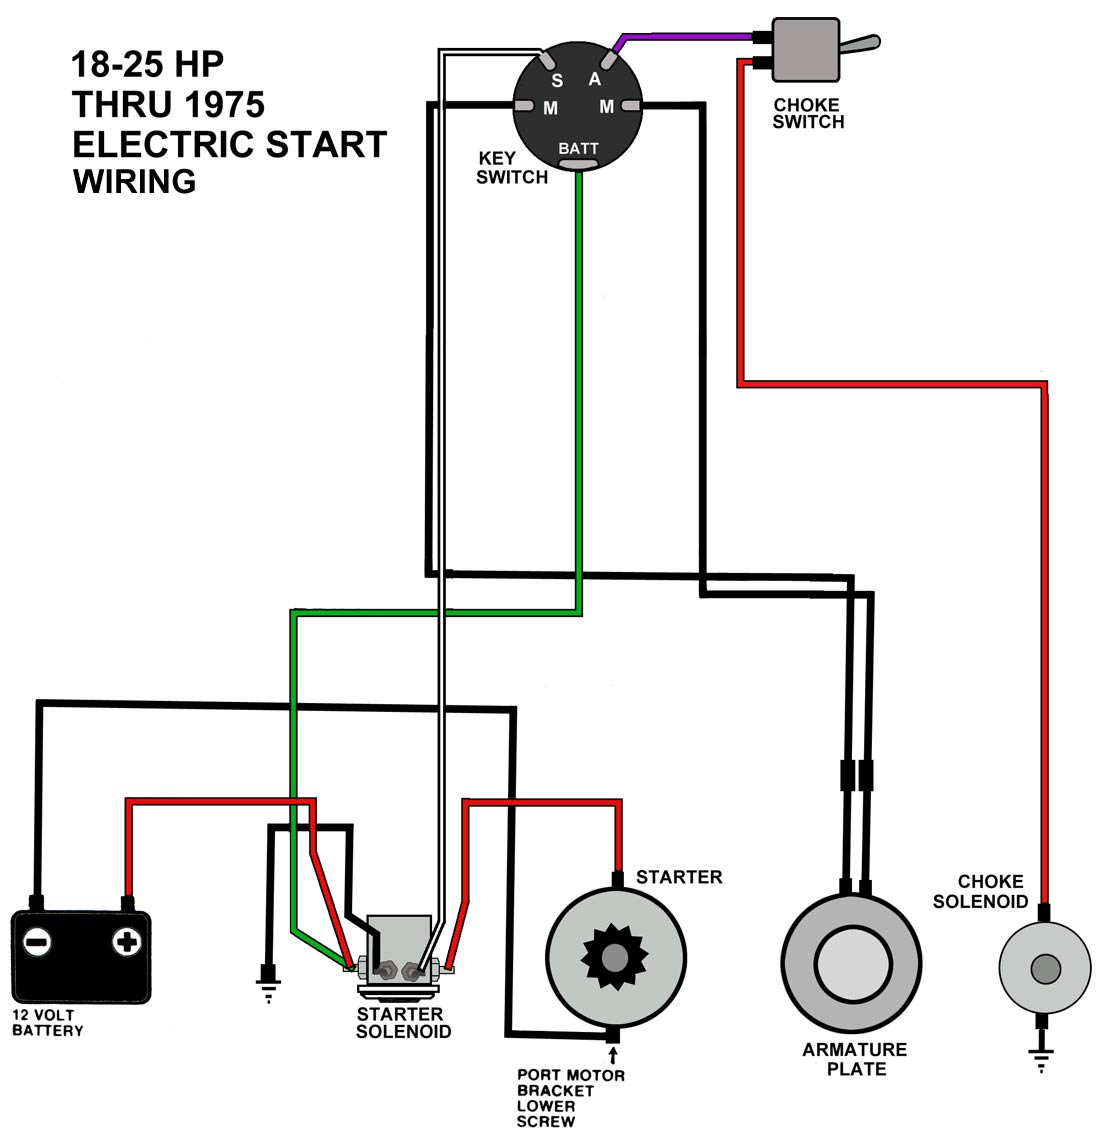 Boat Starter Switch Wiring Diagram - Wiring Diagram Work on